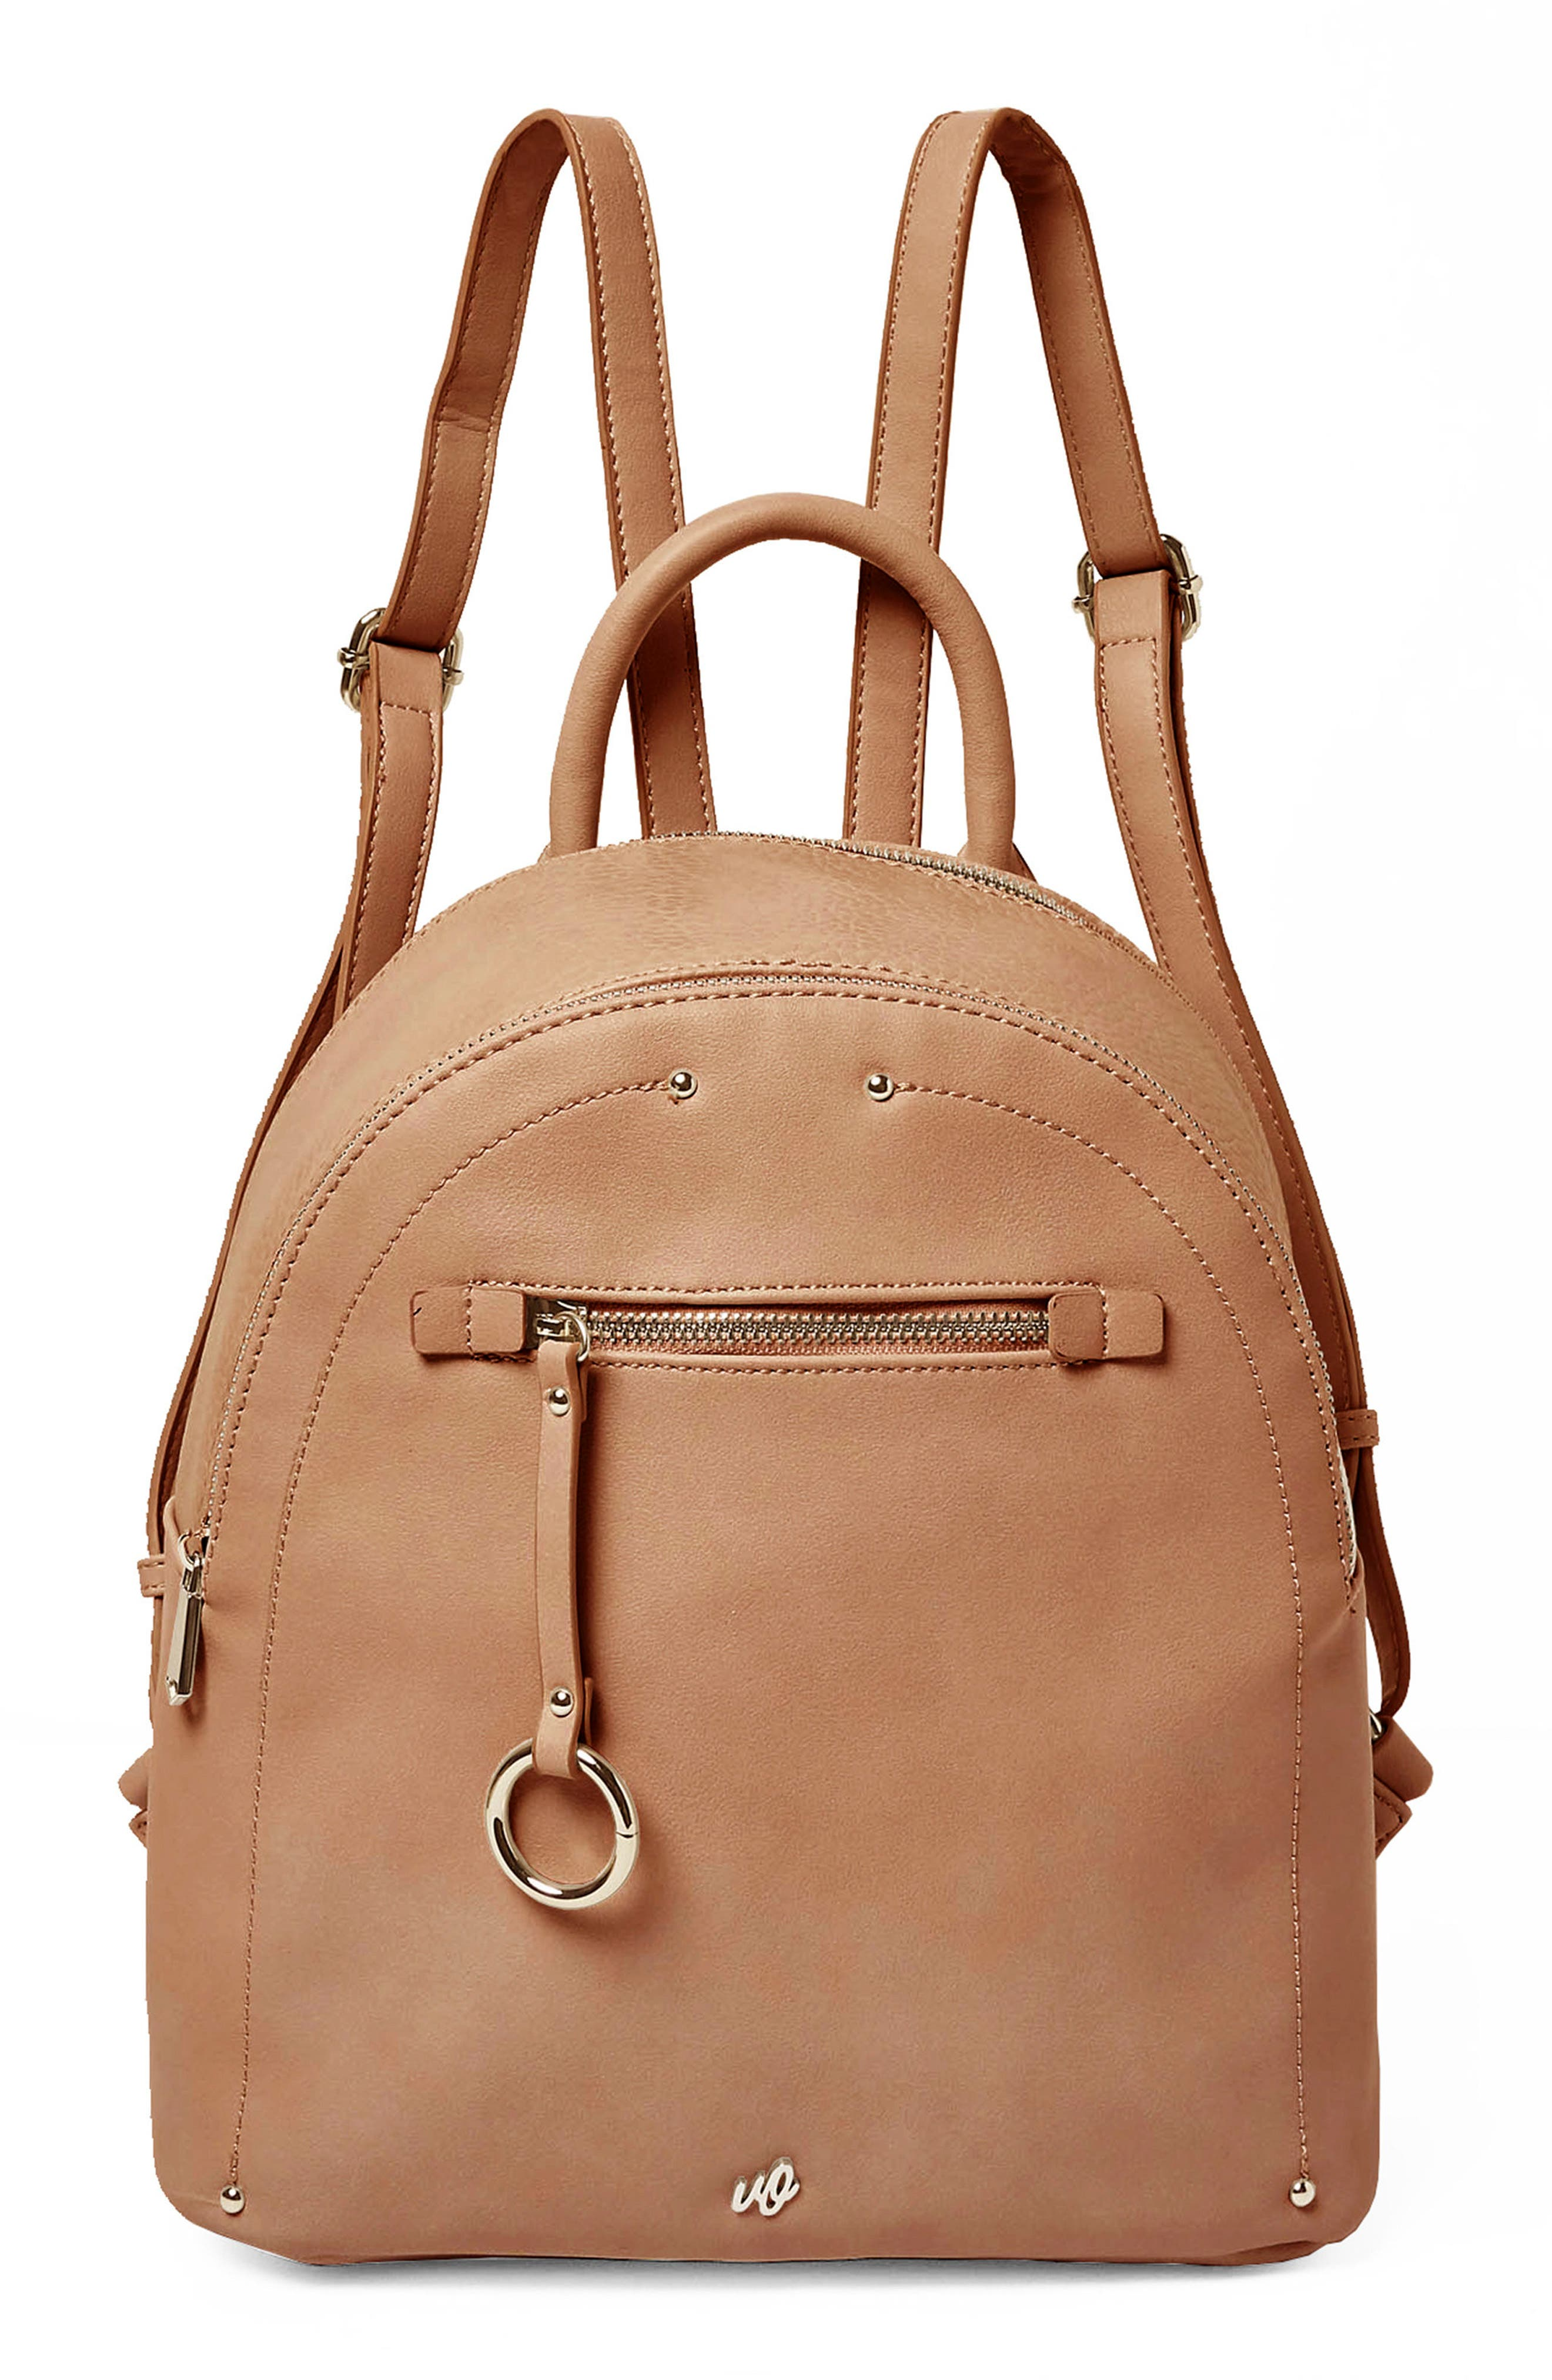 INTO THE NIGHT VEGAN LEATHER BACKPACK - BROWN